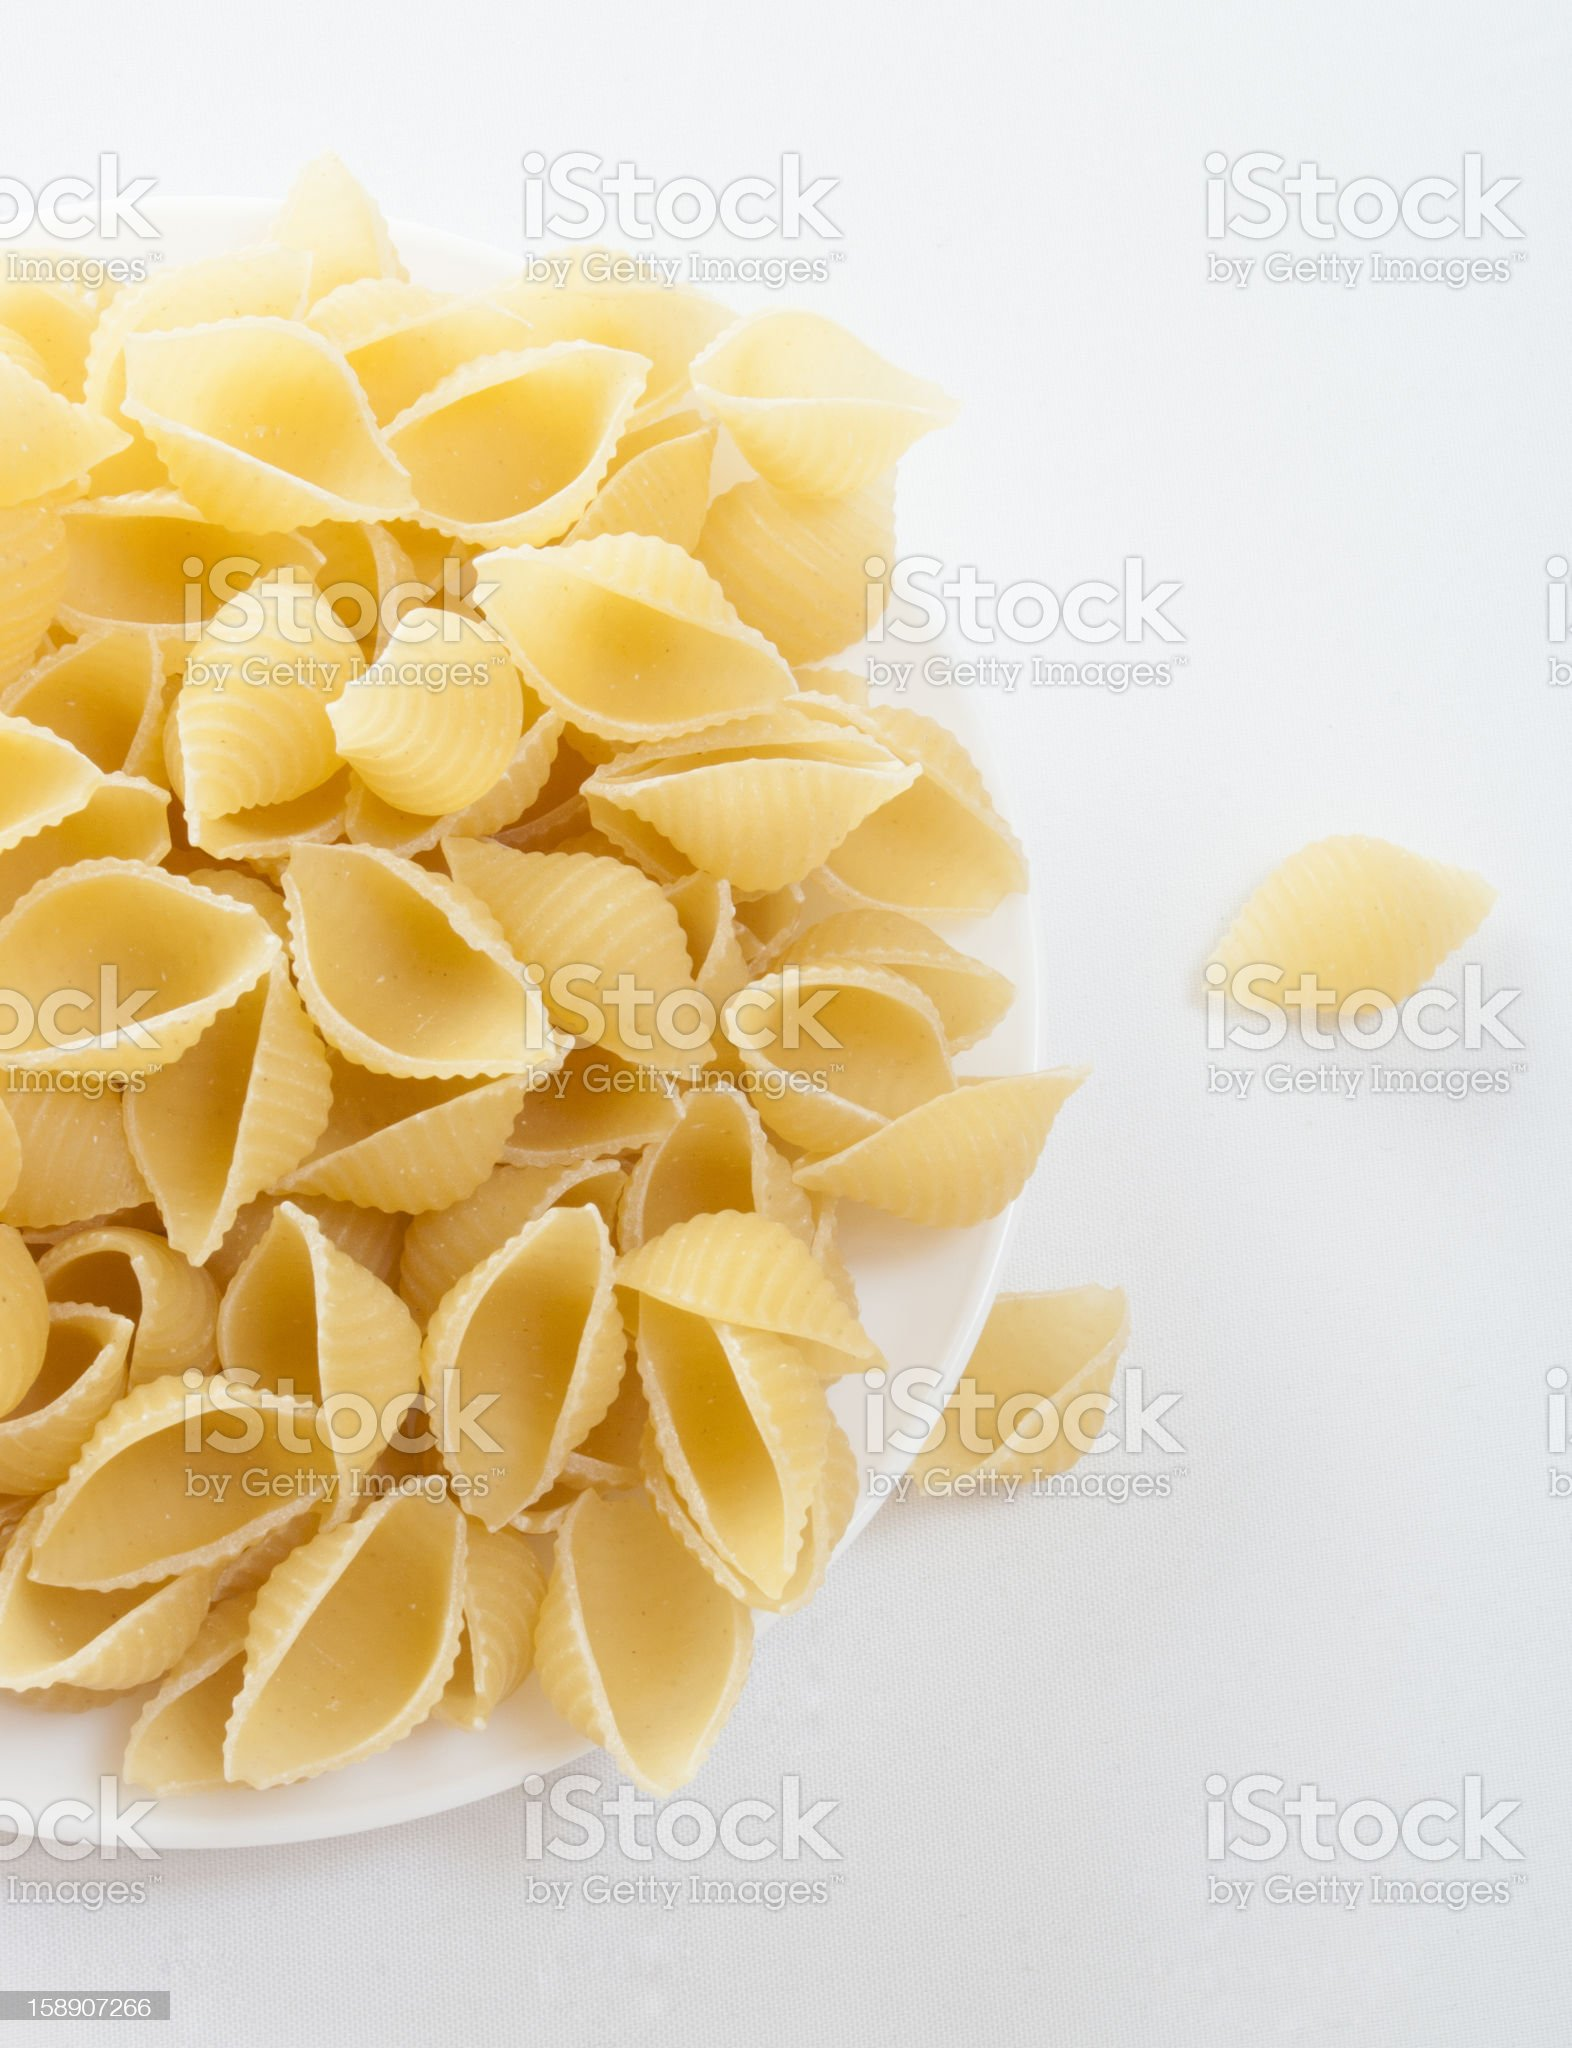 dried italian pasta isolated on white background royalty-free stock photo